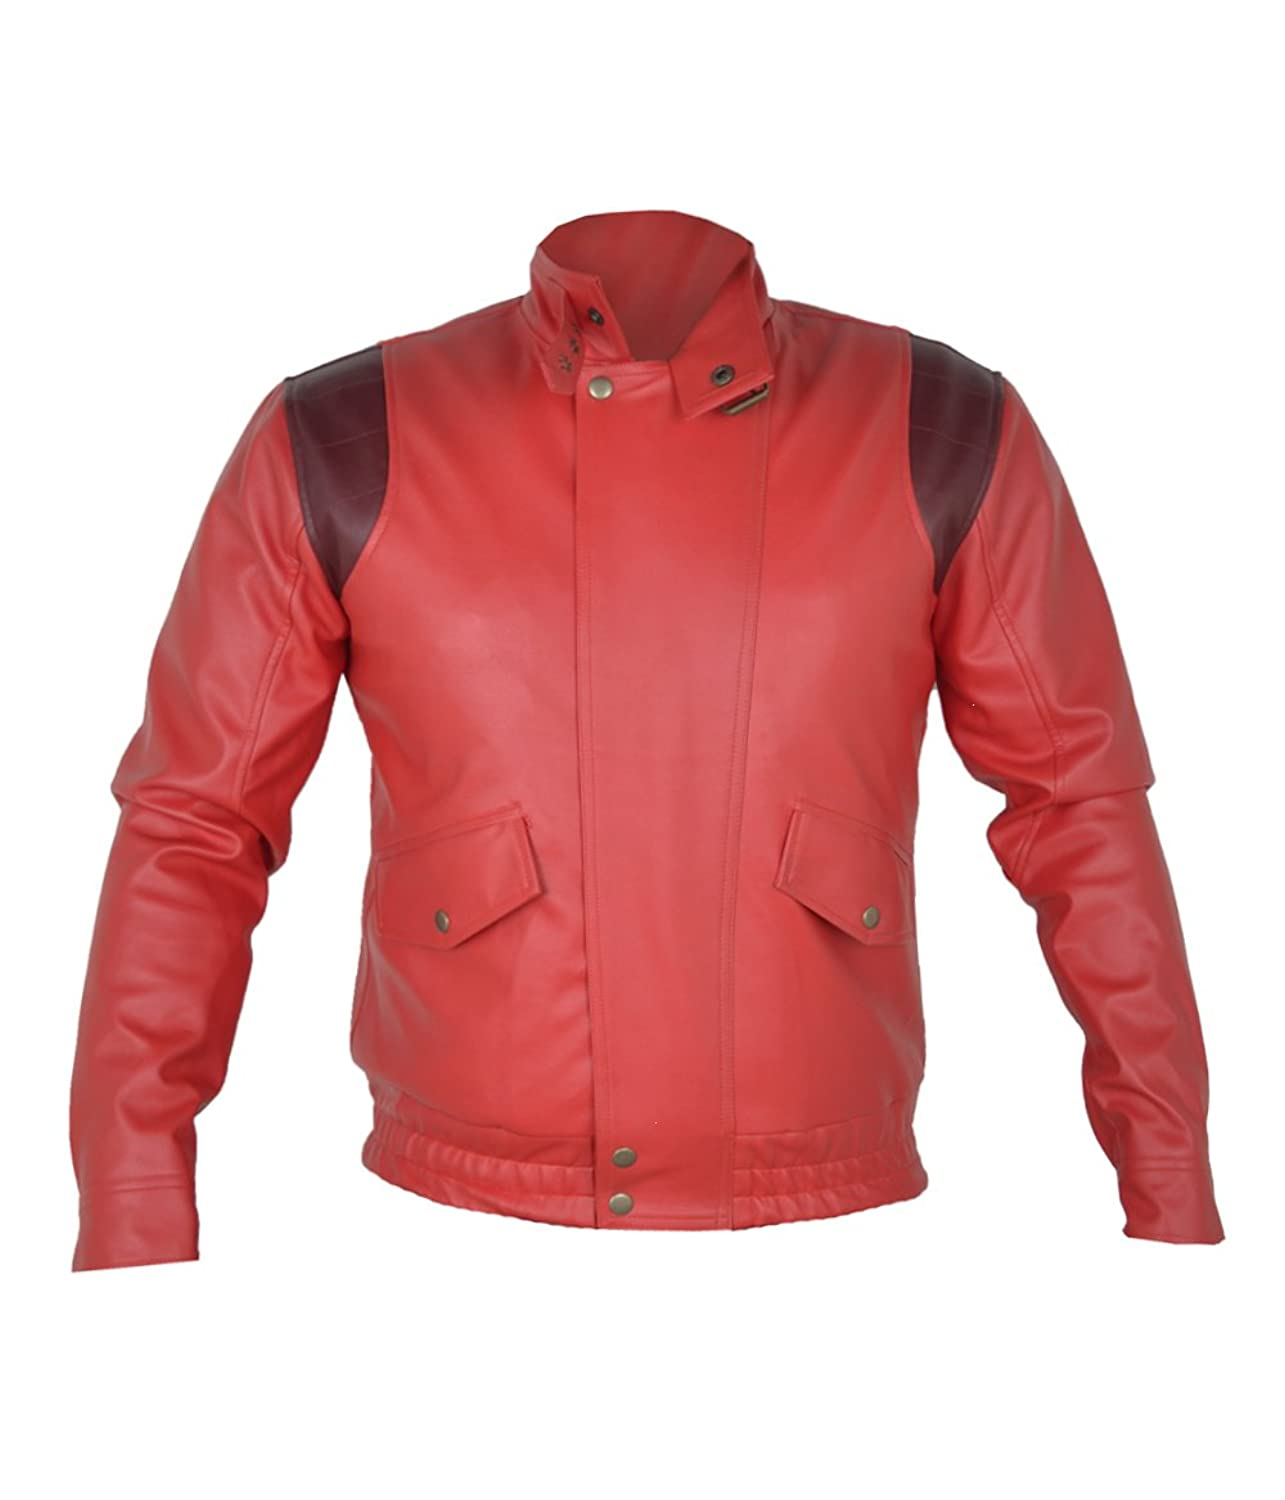 Akira Manga V3 Full Red Real Sheep Leather Jacket With Capsule only online kaufen